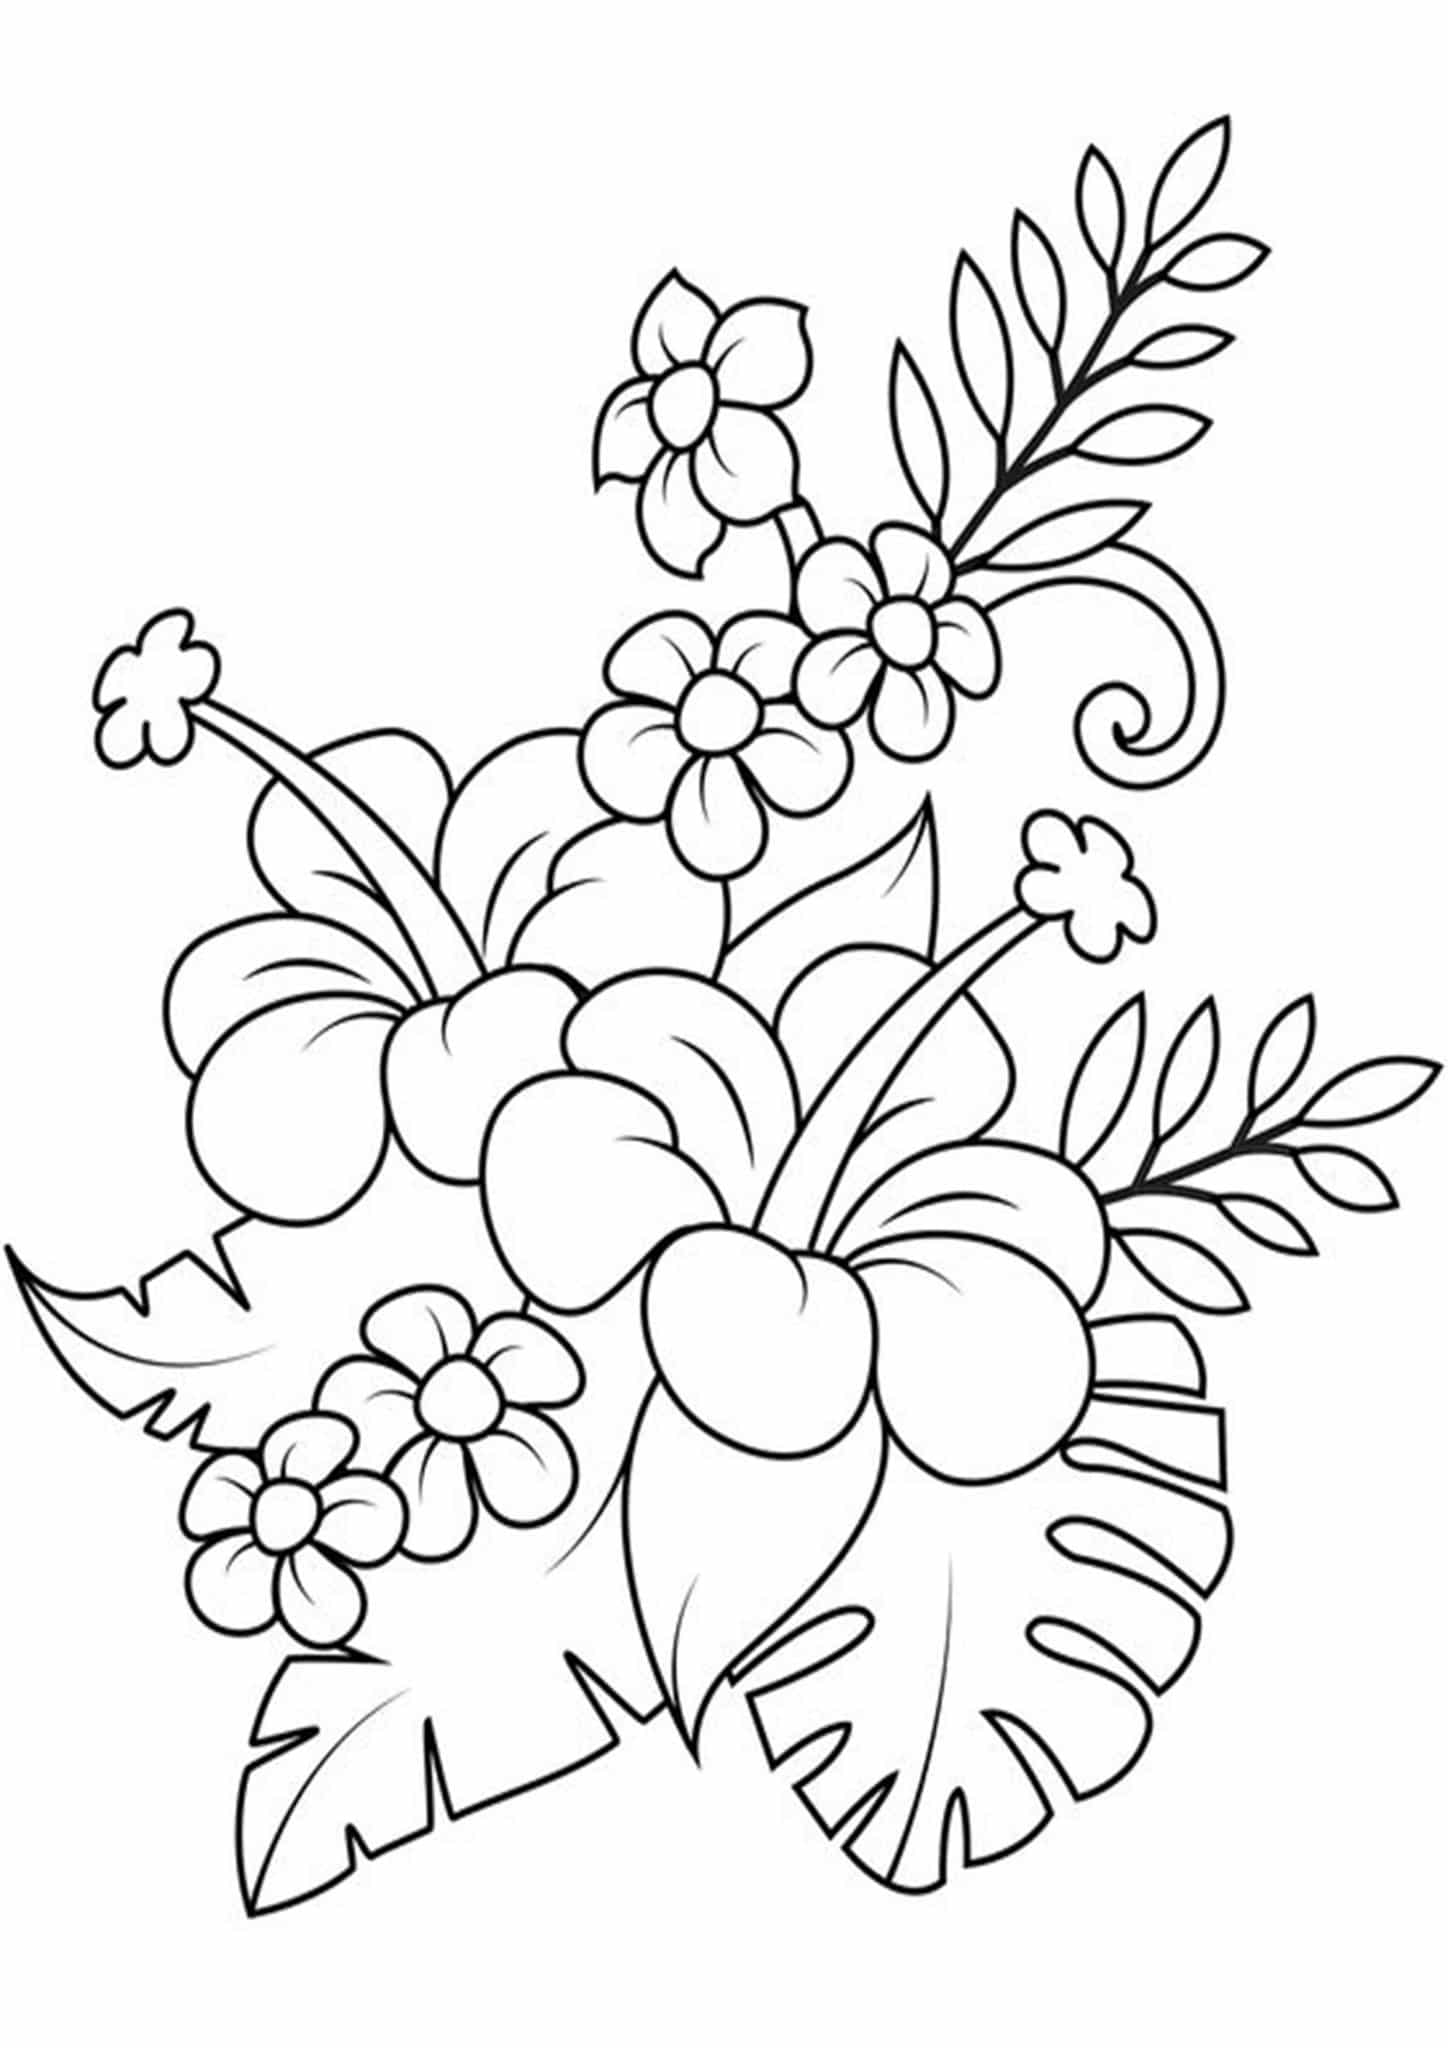 flowers coloring pages printable bouquet of flowers coloring pages for childrens printable coloring pages printable flowers